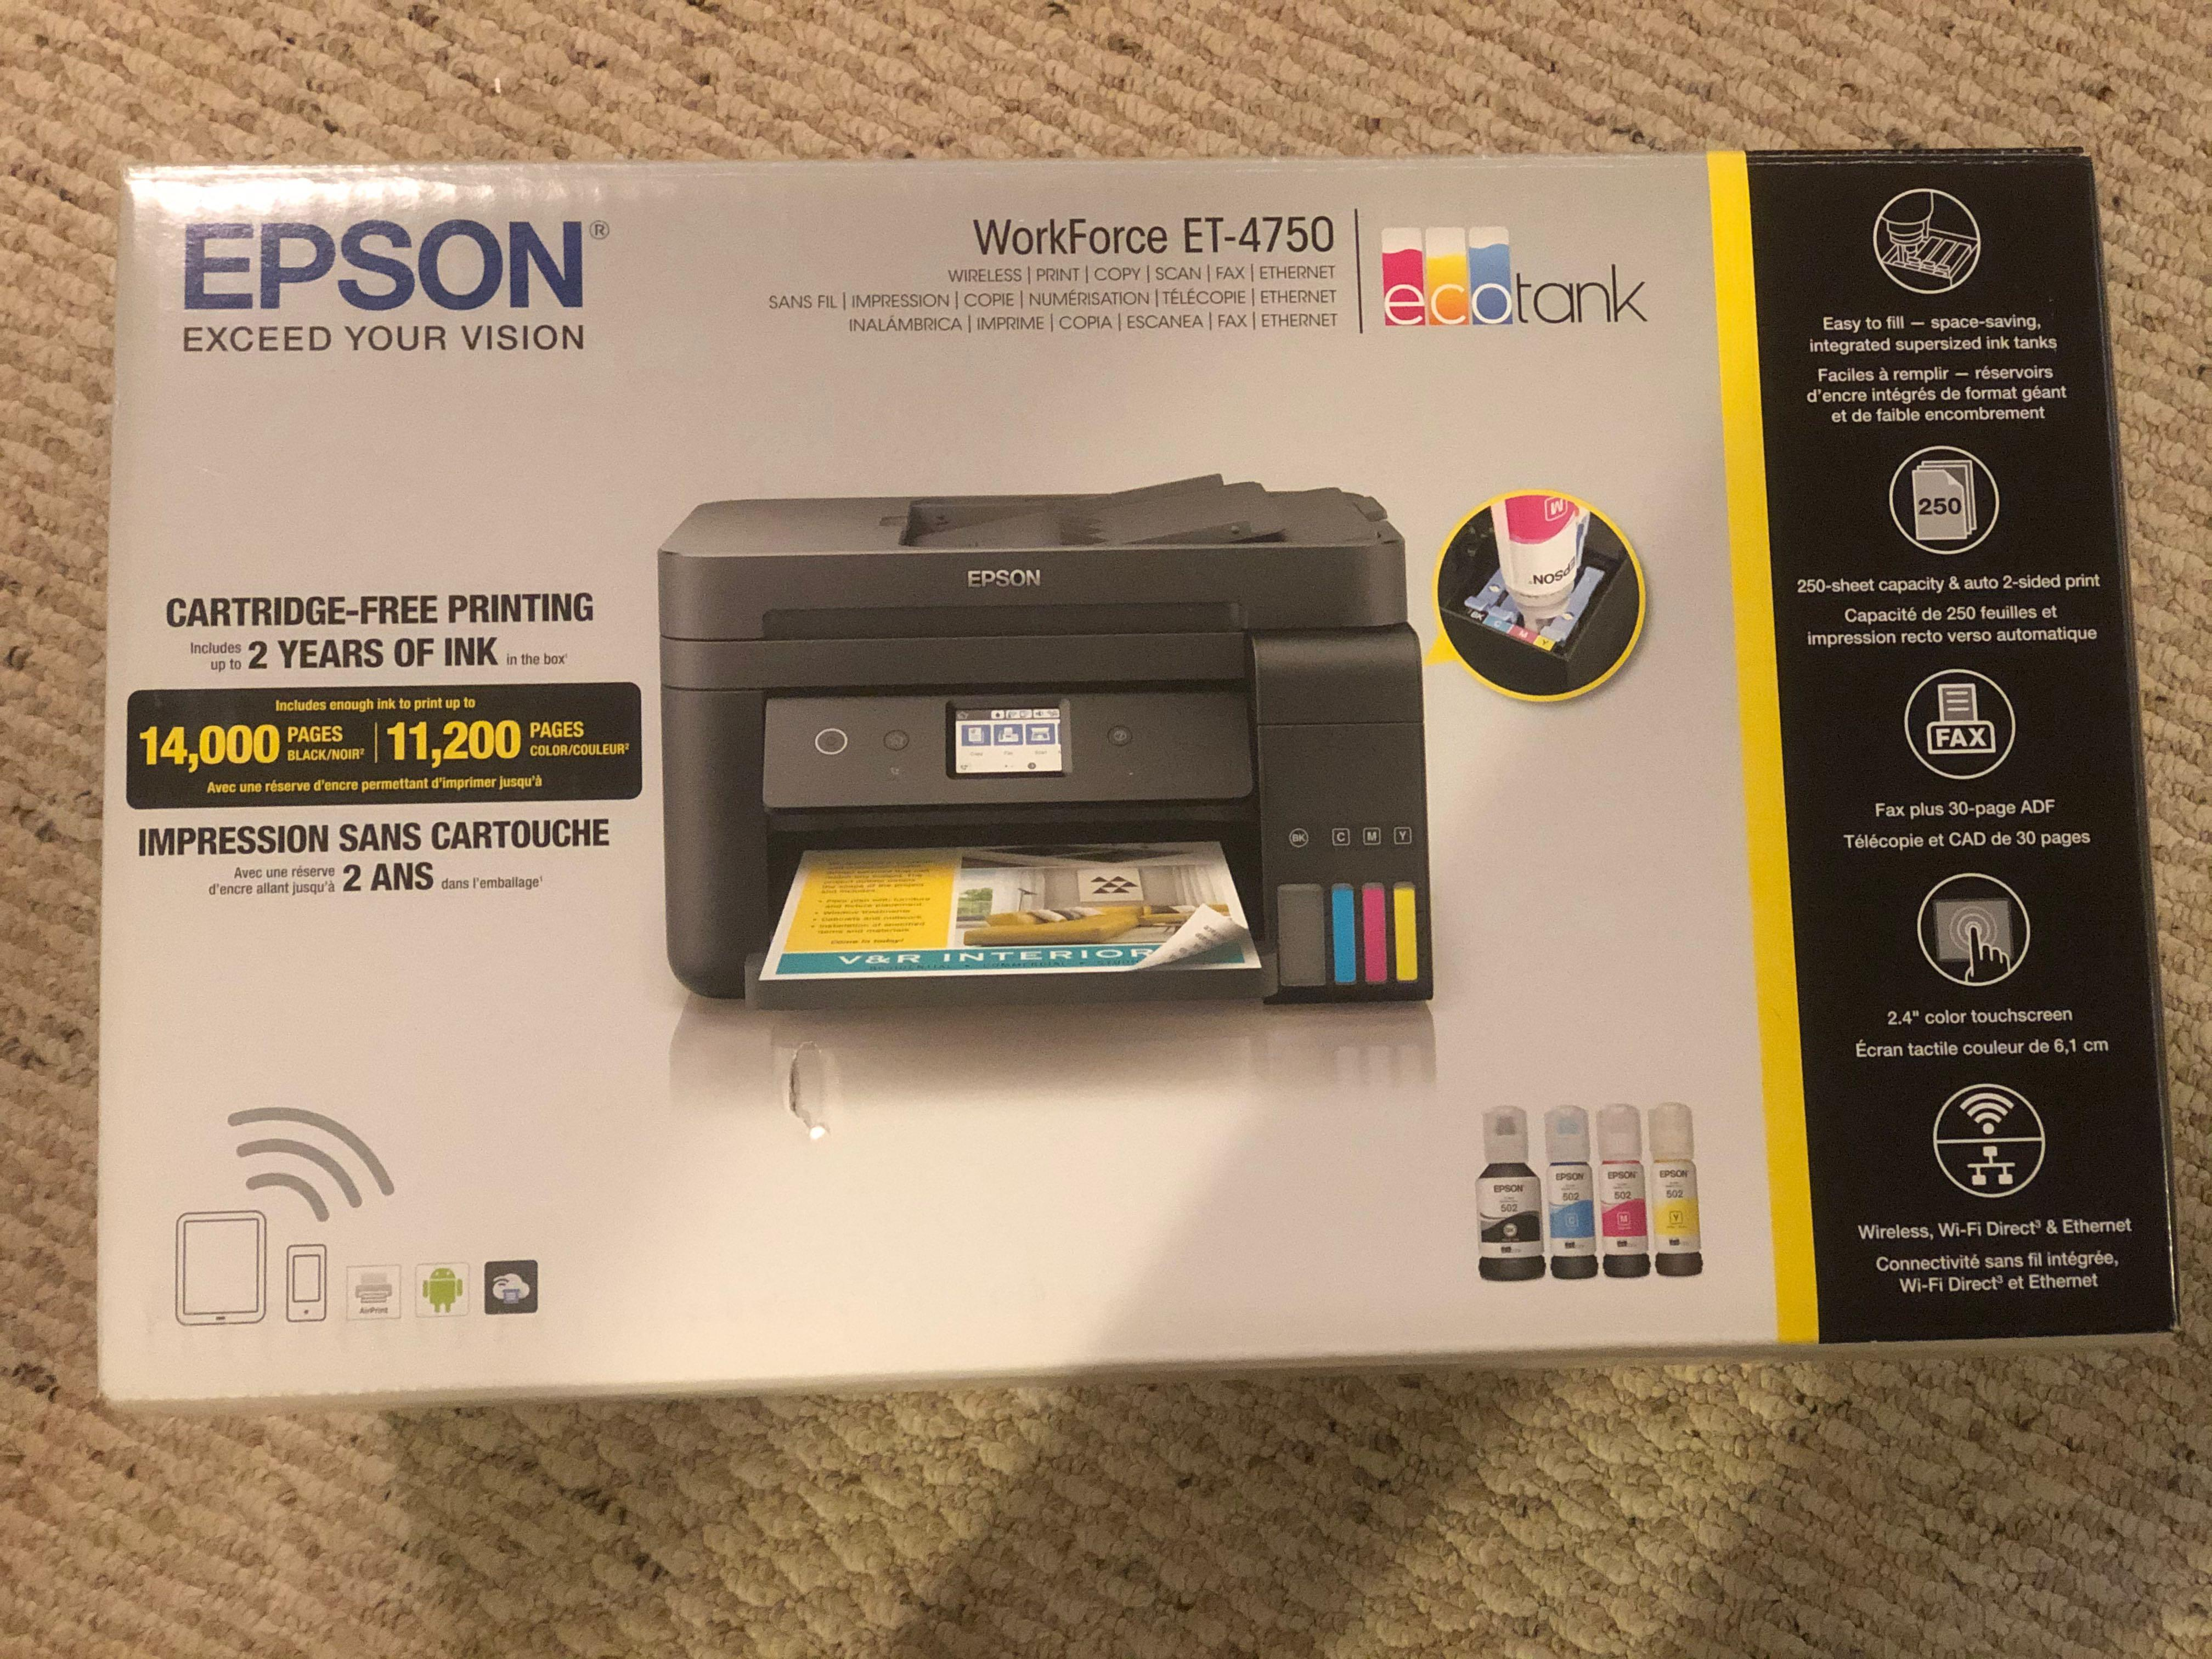 Epson all in one ET-4750 printer